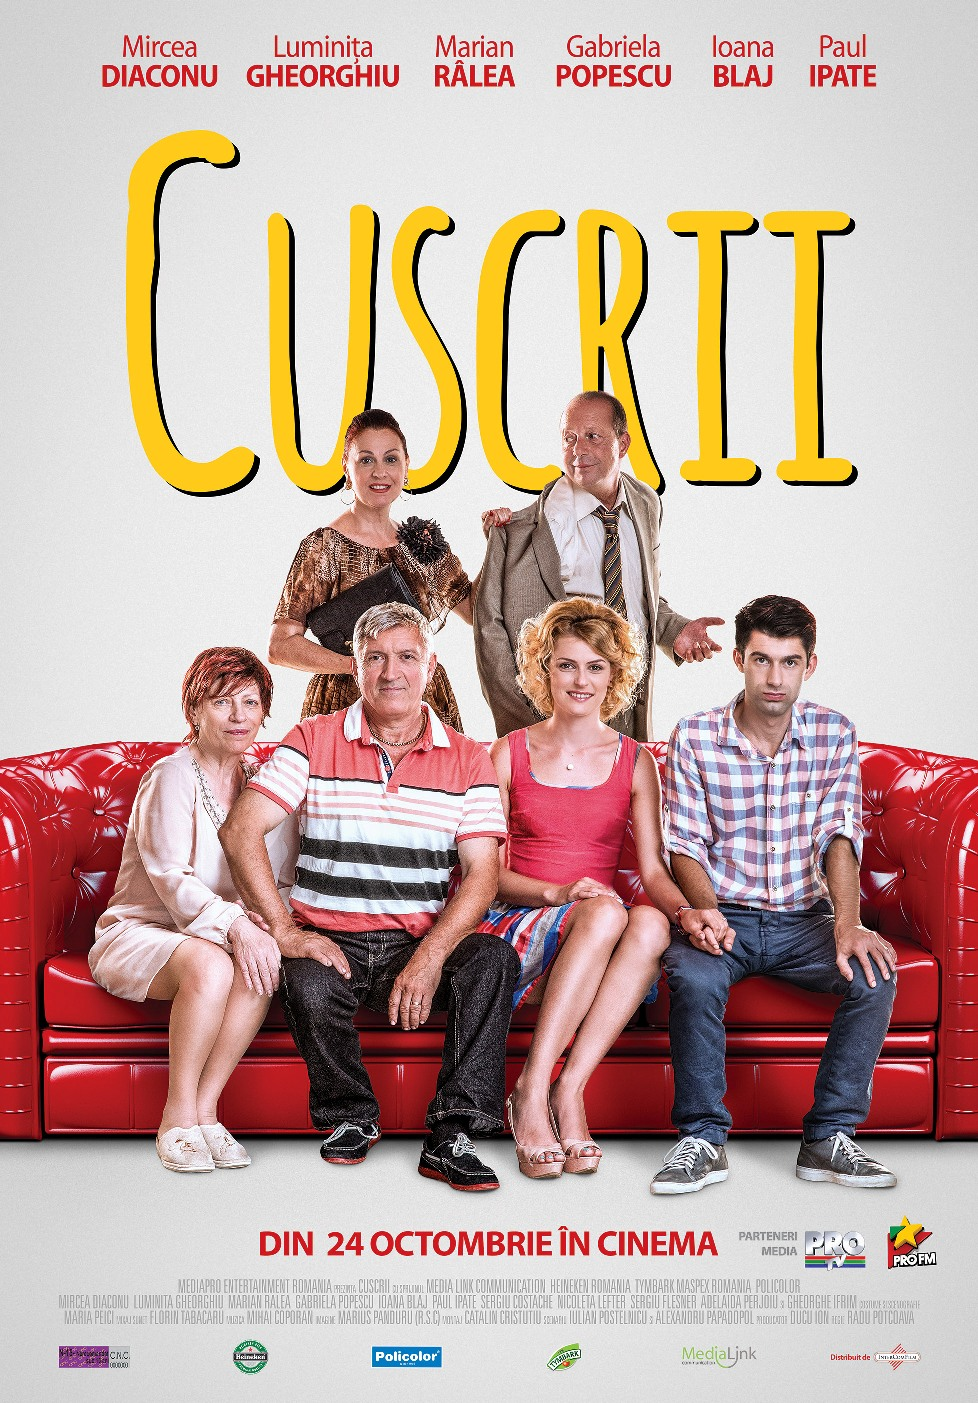 Cuscrii (2014) - Photo